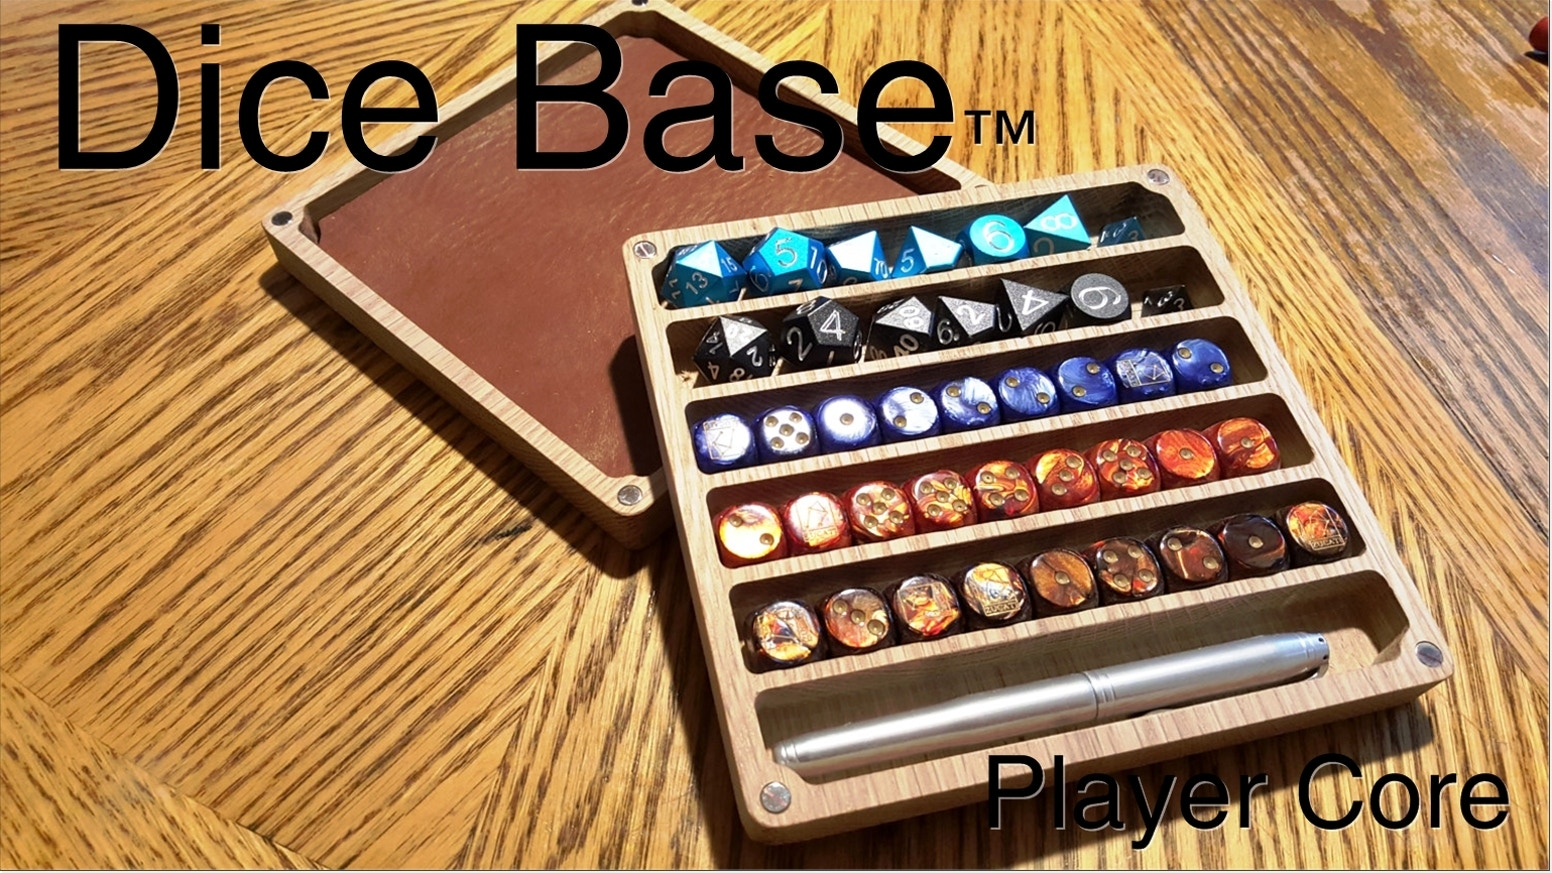 Made from the finest cherry and oak hardwood this dice case, pen holder and rolling surface provides all you need to role-play in style